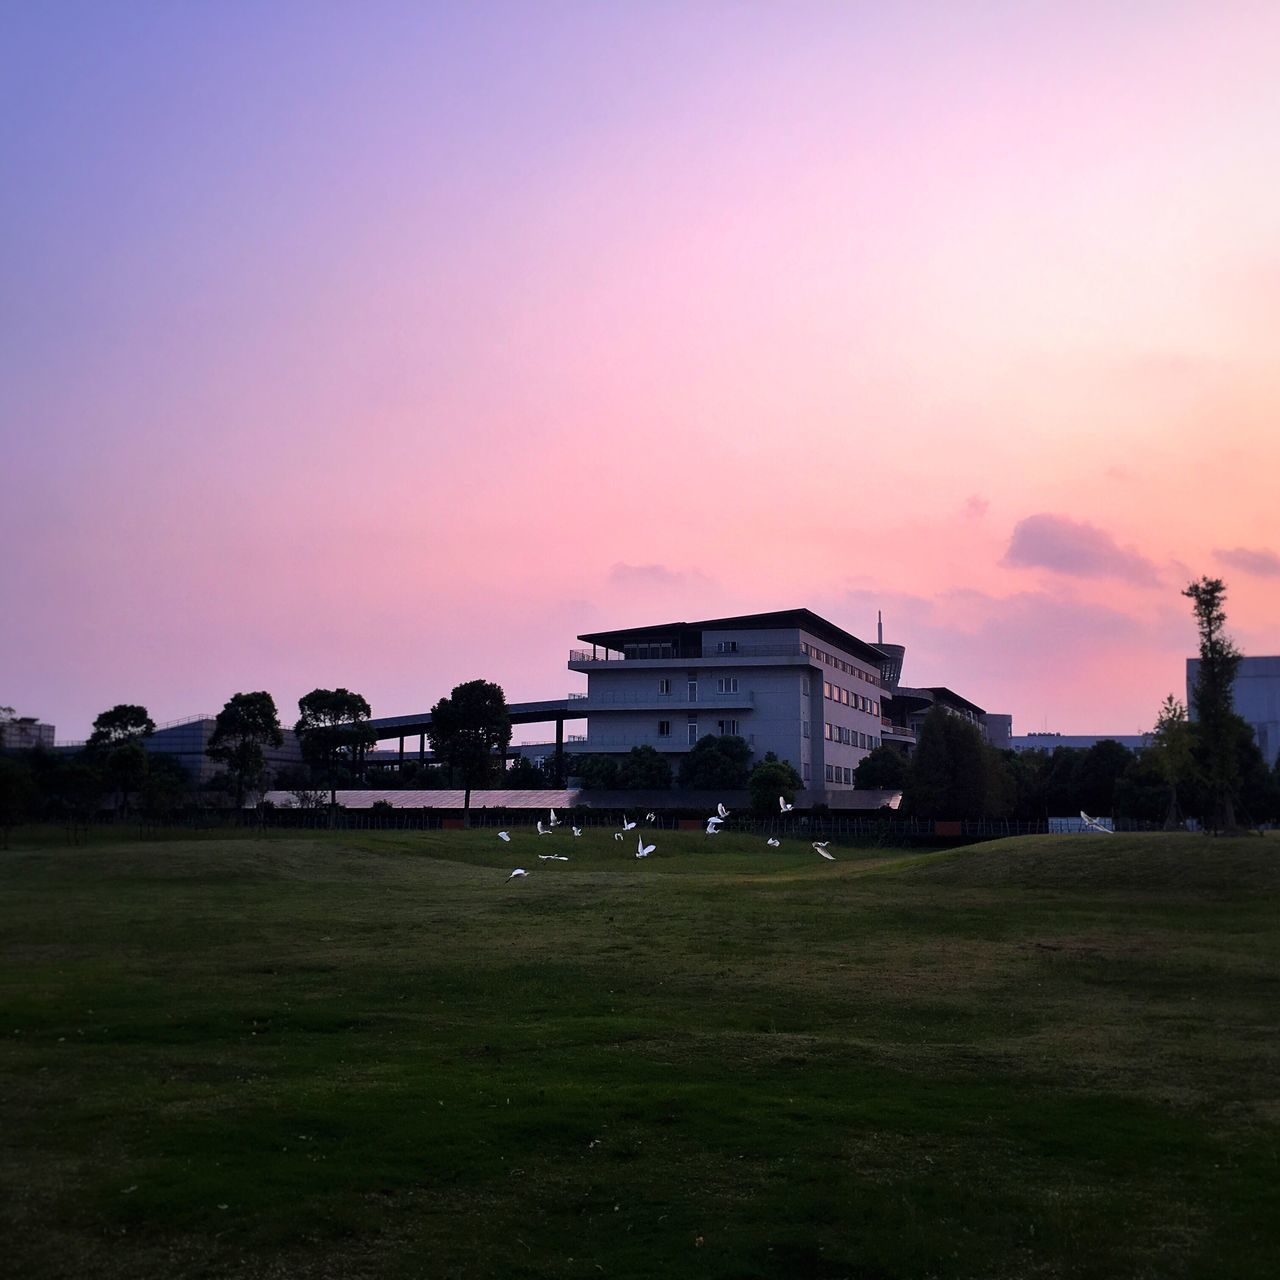 grass, sunset, built structure, field, building exterior, architecture, house, nature, sky, no people, outdoors, tree, silhouette, landscape, beauty in nature, playing field, scenics, golf course, day